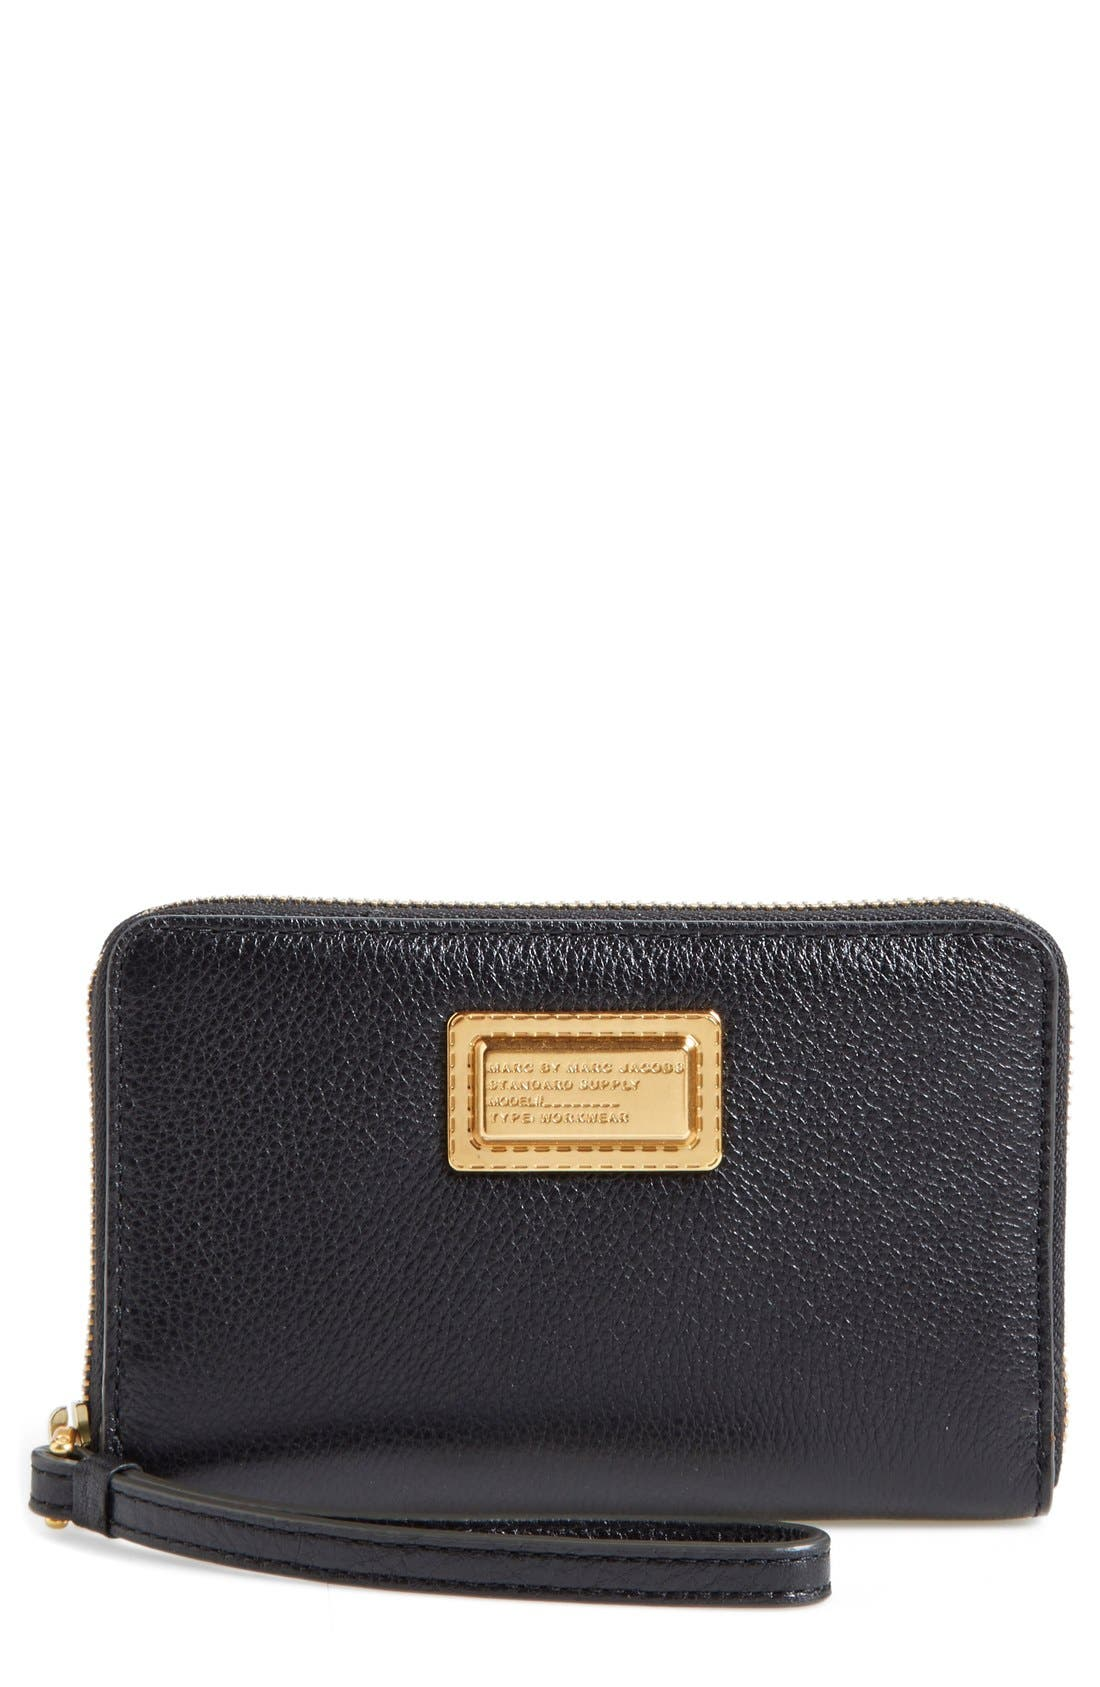 MARC BY MARC JACOBS 'Take Your Marc - Wingman' Smartphone Wristlet,                         Main,                         color, 001